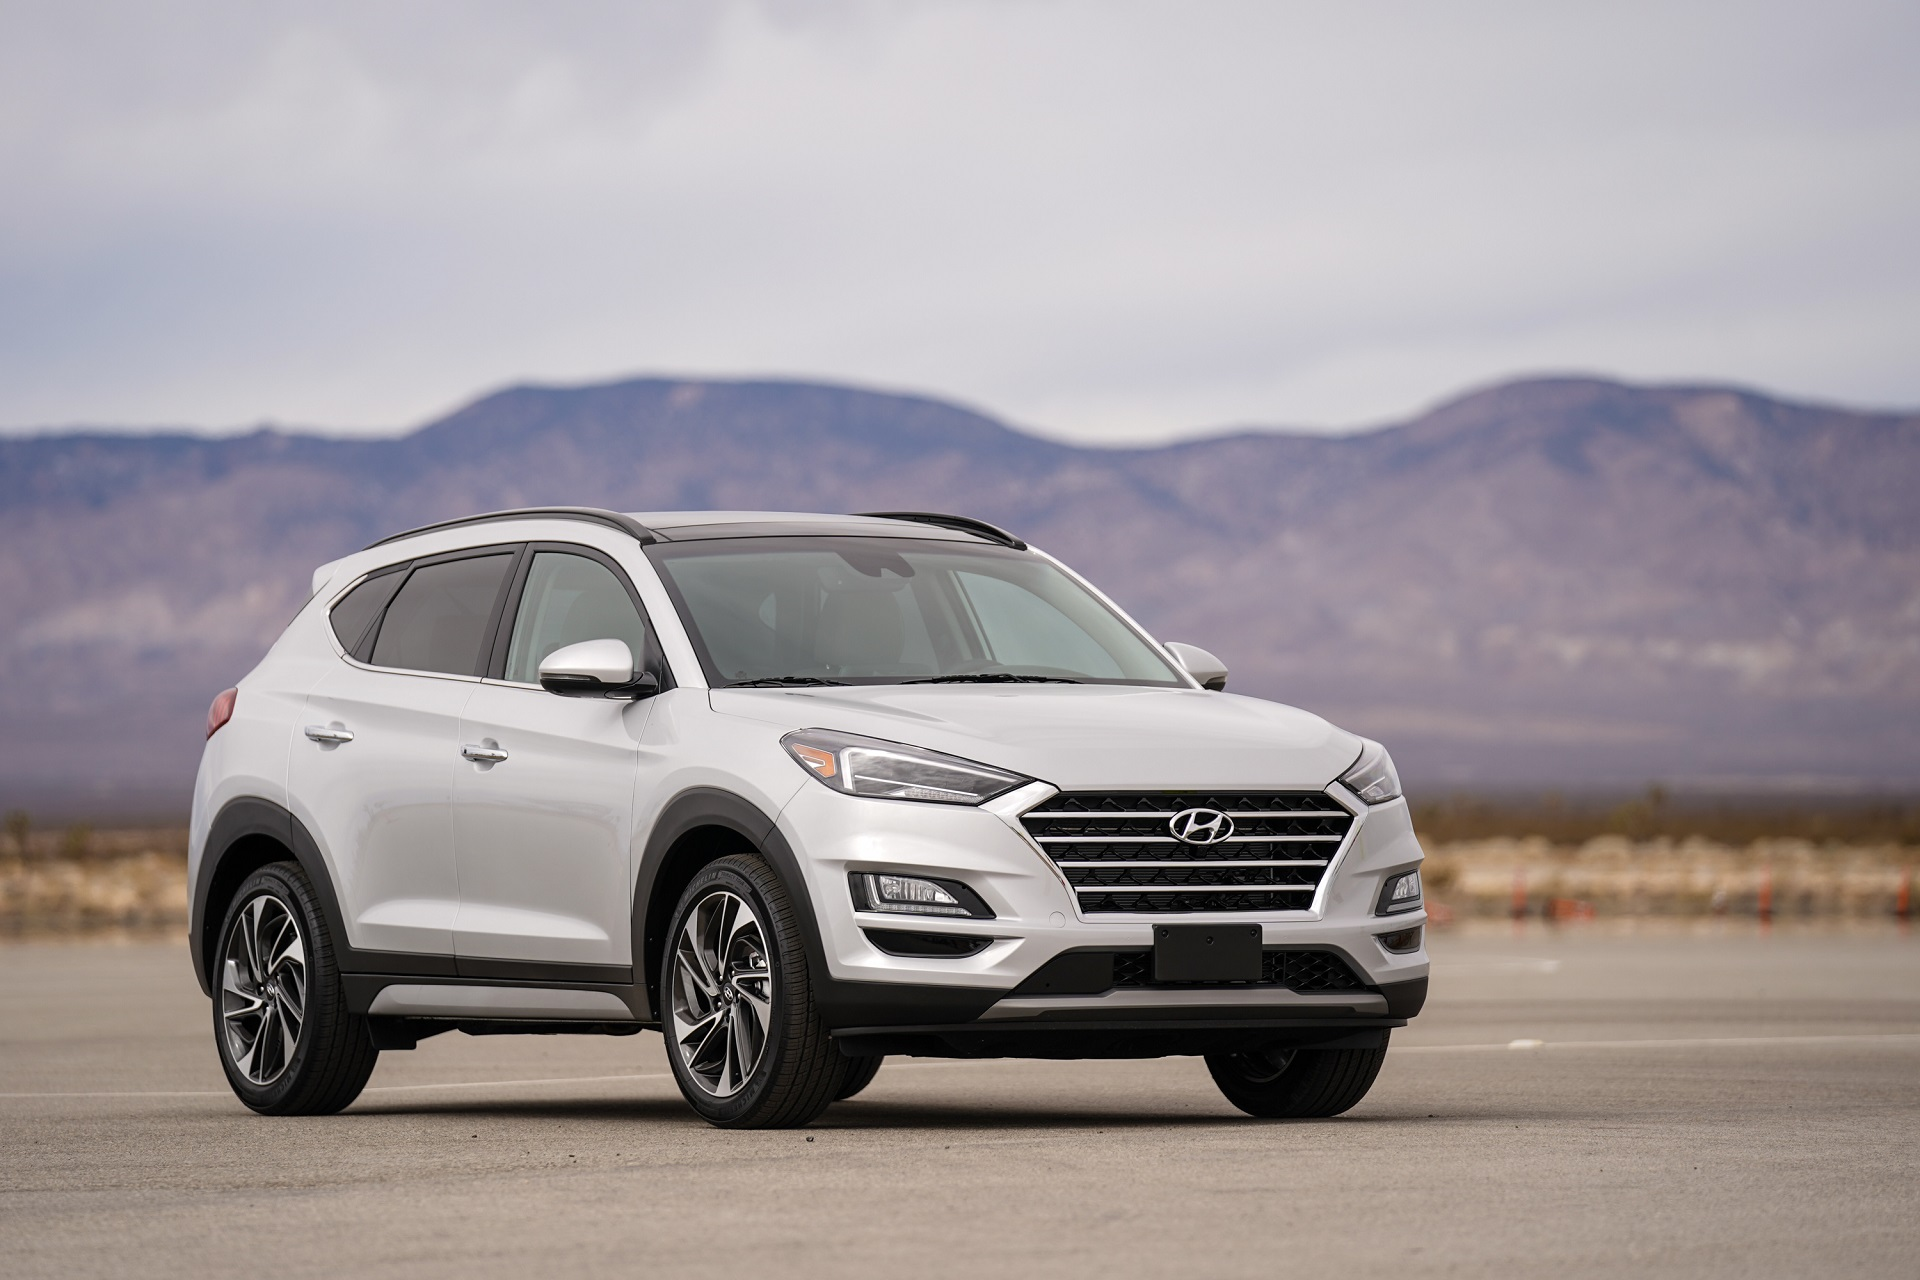 Facelifted 2019 hyundai tucson gets a new interior more tech the drive - Hyundai tucson interior ...